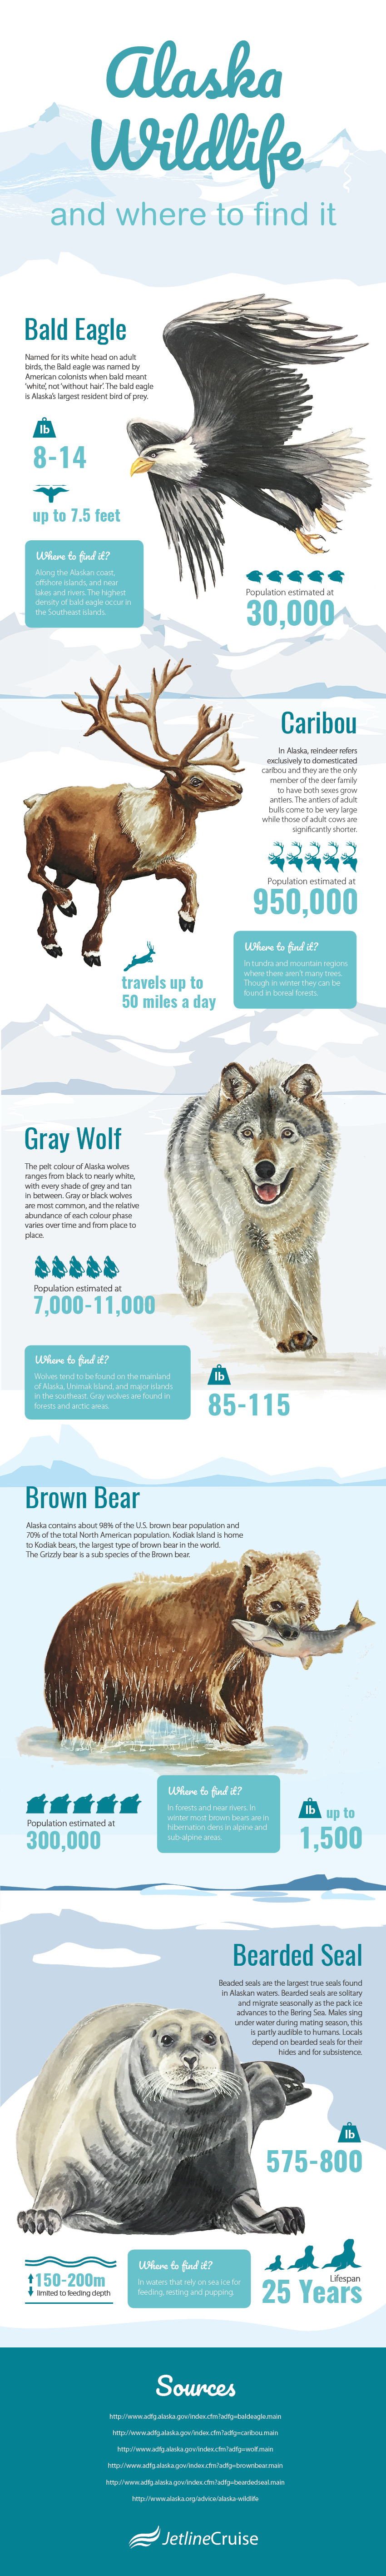 Alaska Wildlife and Where to Find It Infographic